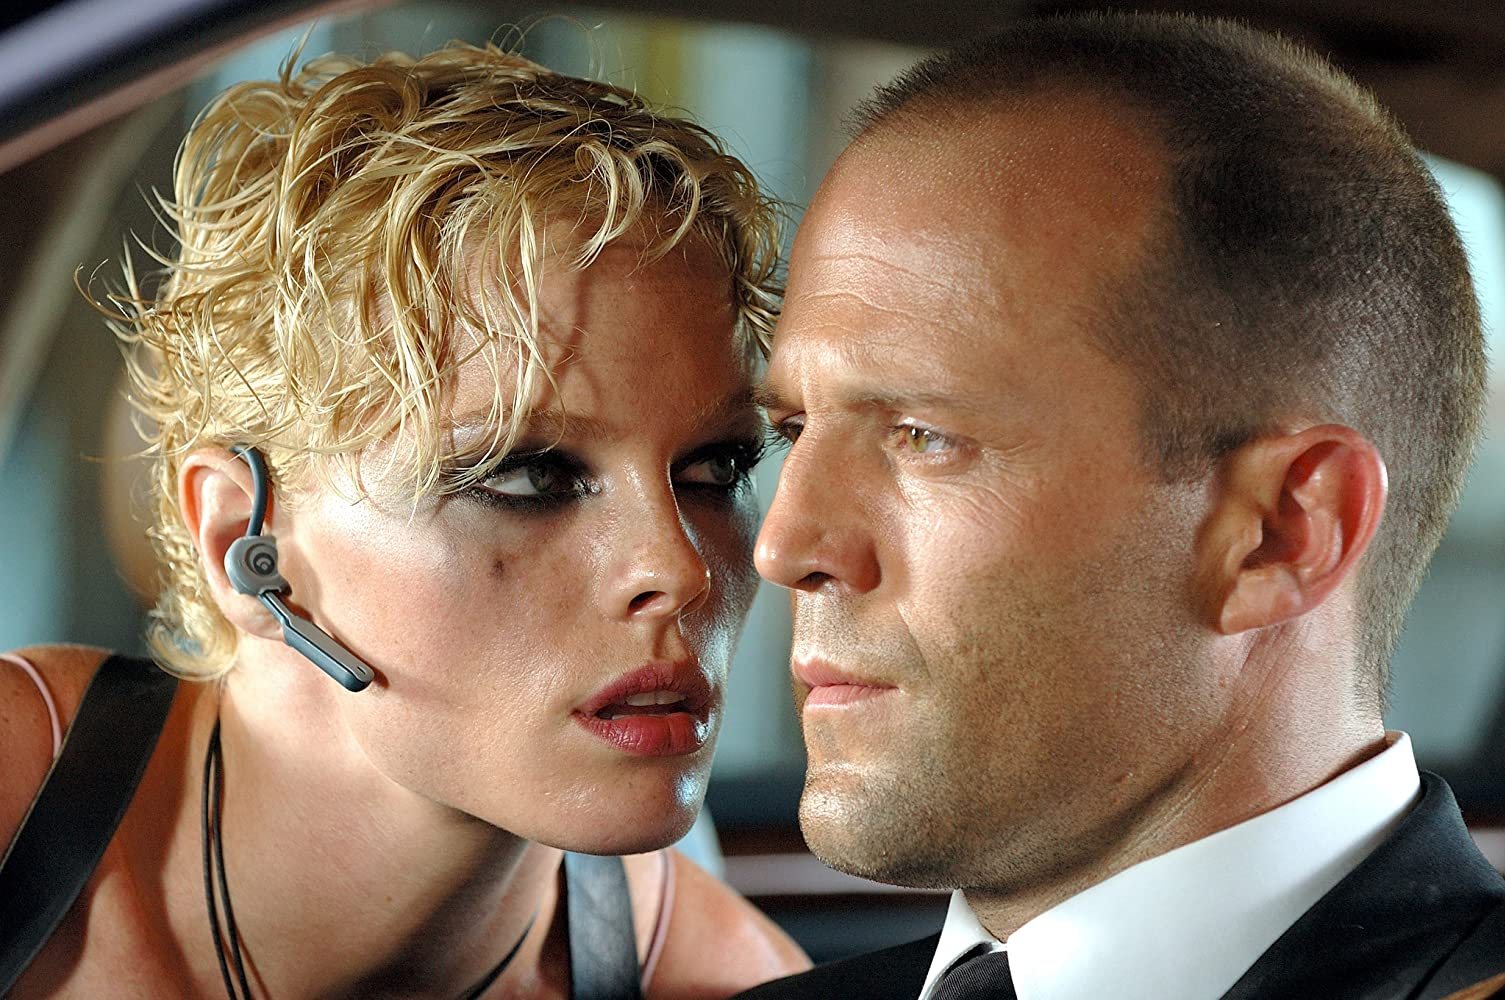 Jason Statham and Kate Nauta in Transporter 2 (2005)